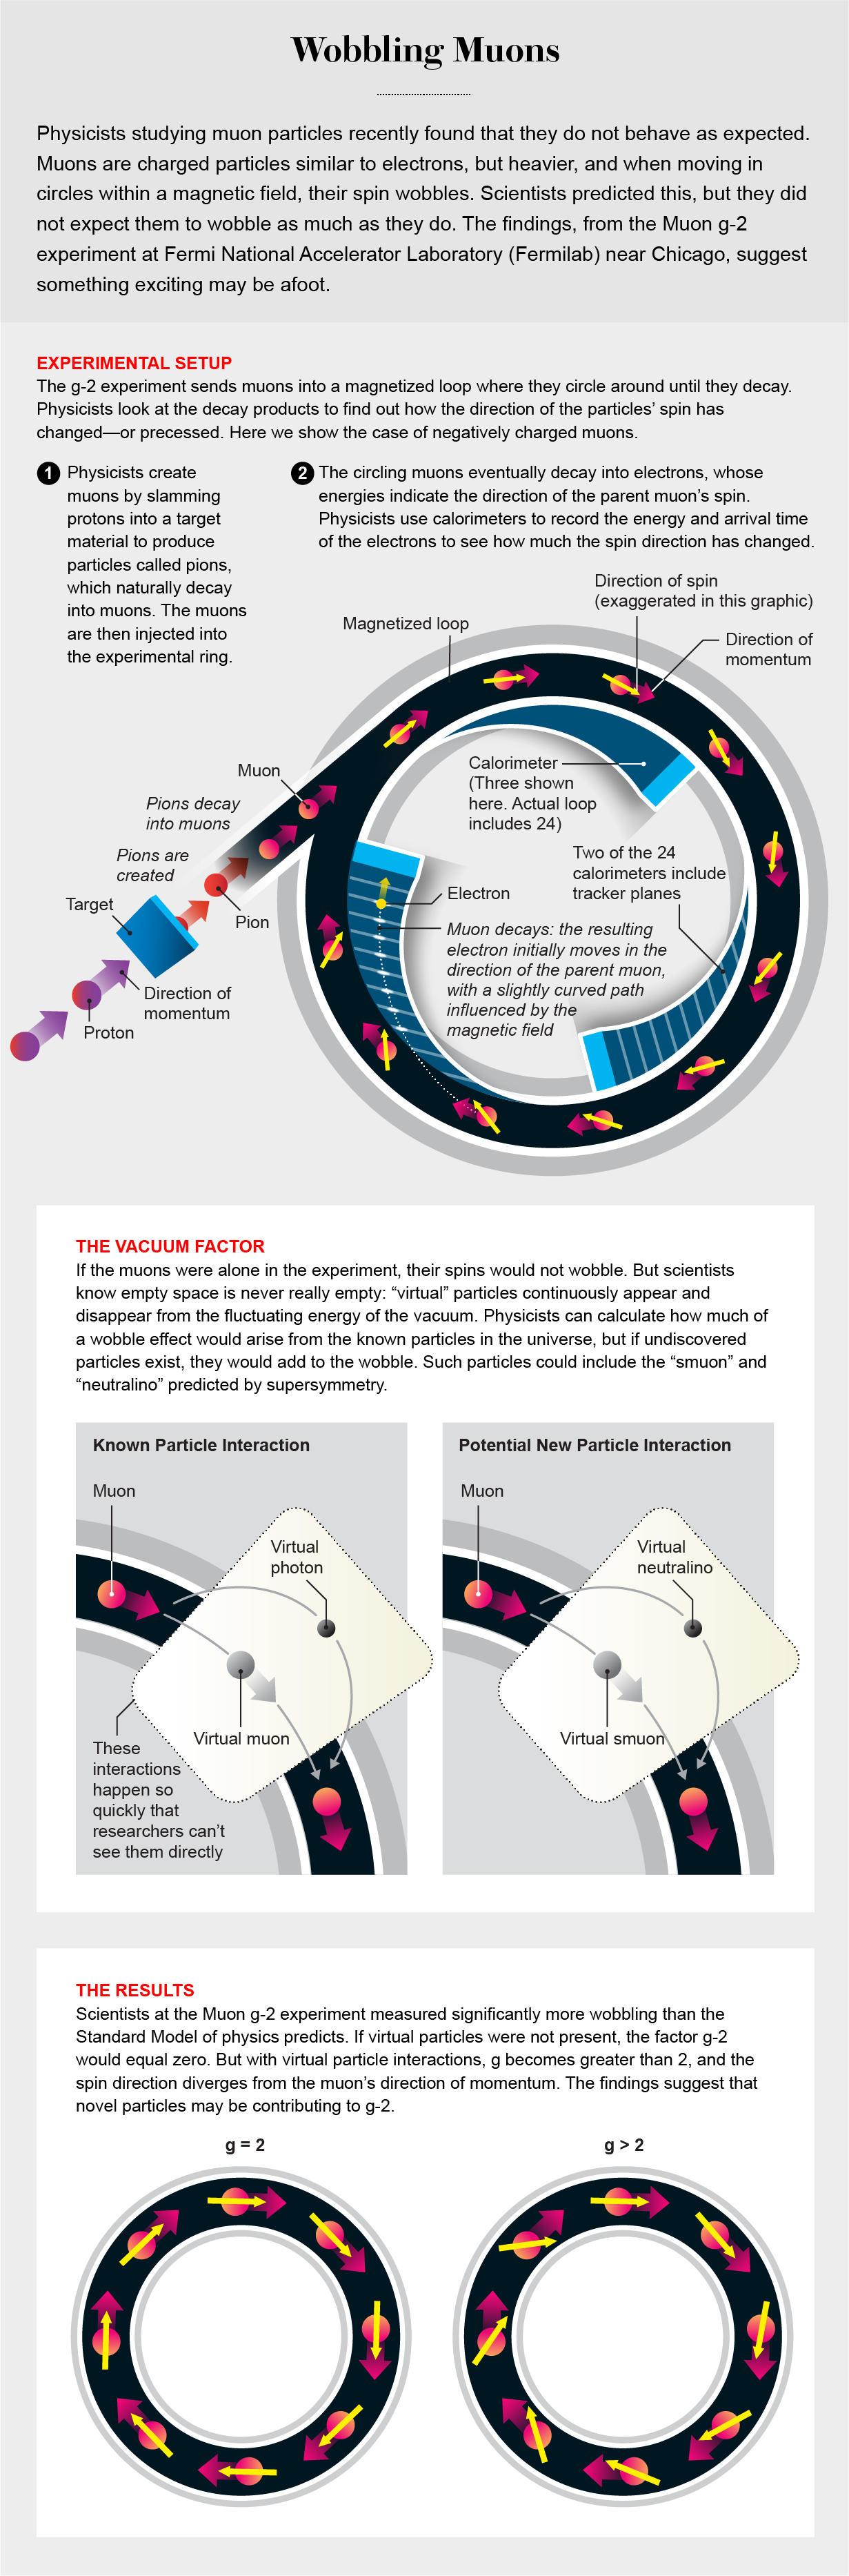 Graphic shows setup of Muon g-2 experiment and particle interactions that may cause muons' spins to wobble so much.